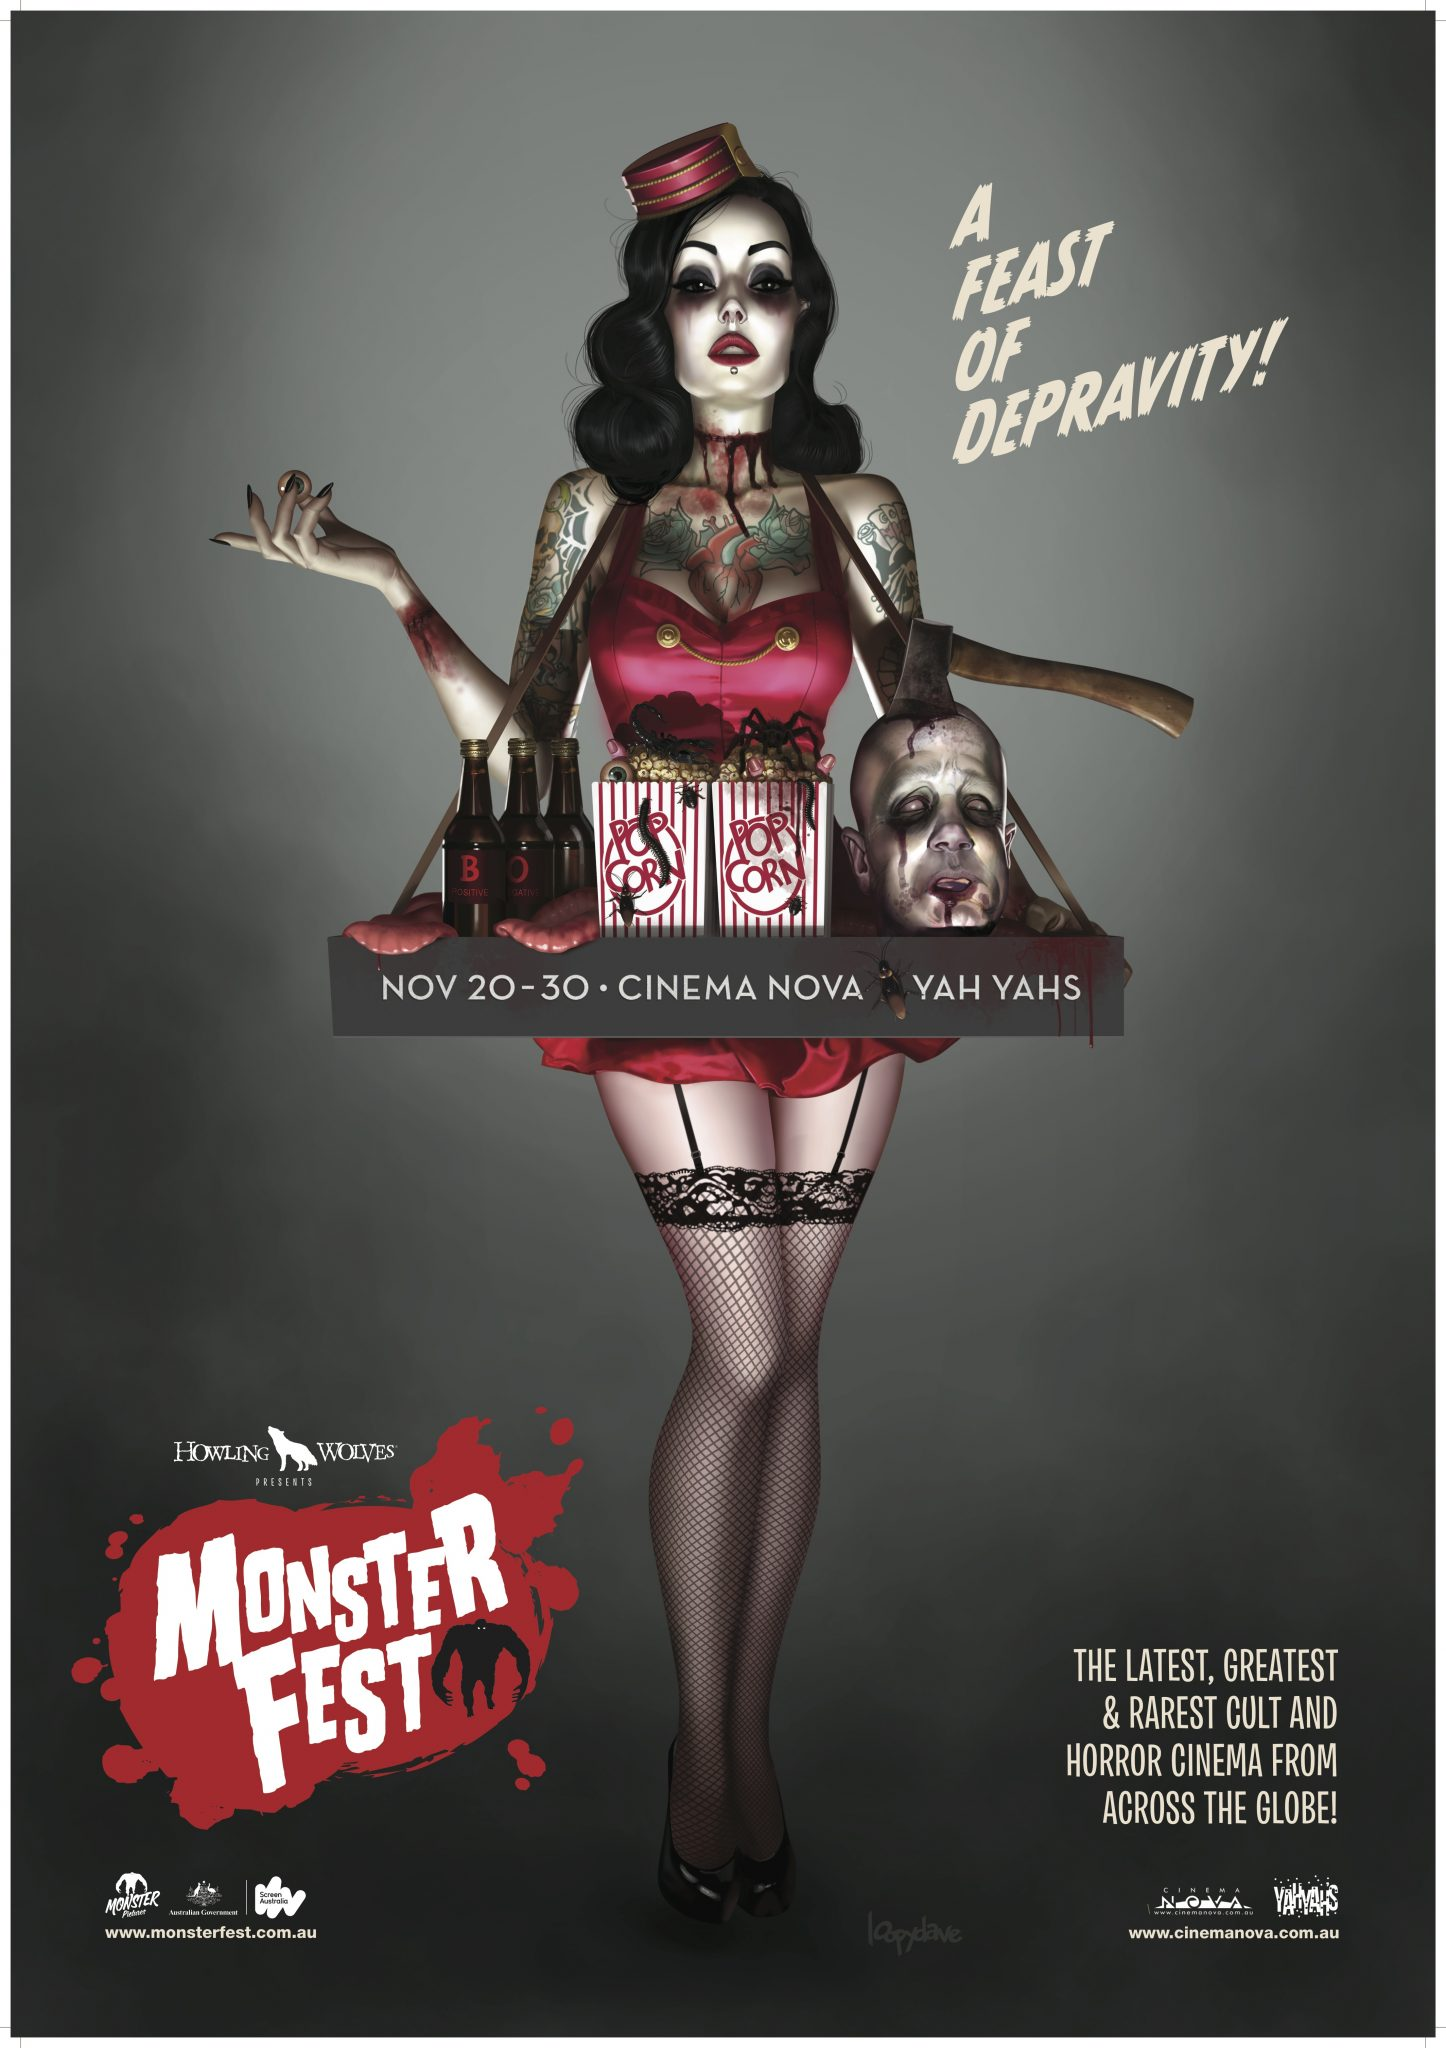 Monsterfest cinema poster-thumb-4255x6027-51406